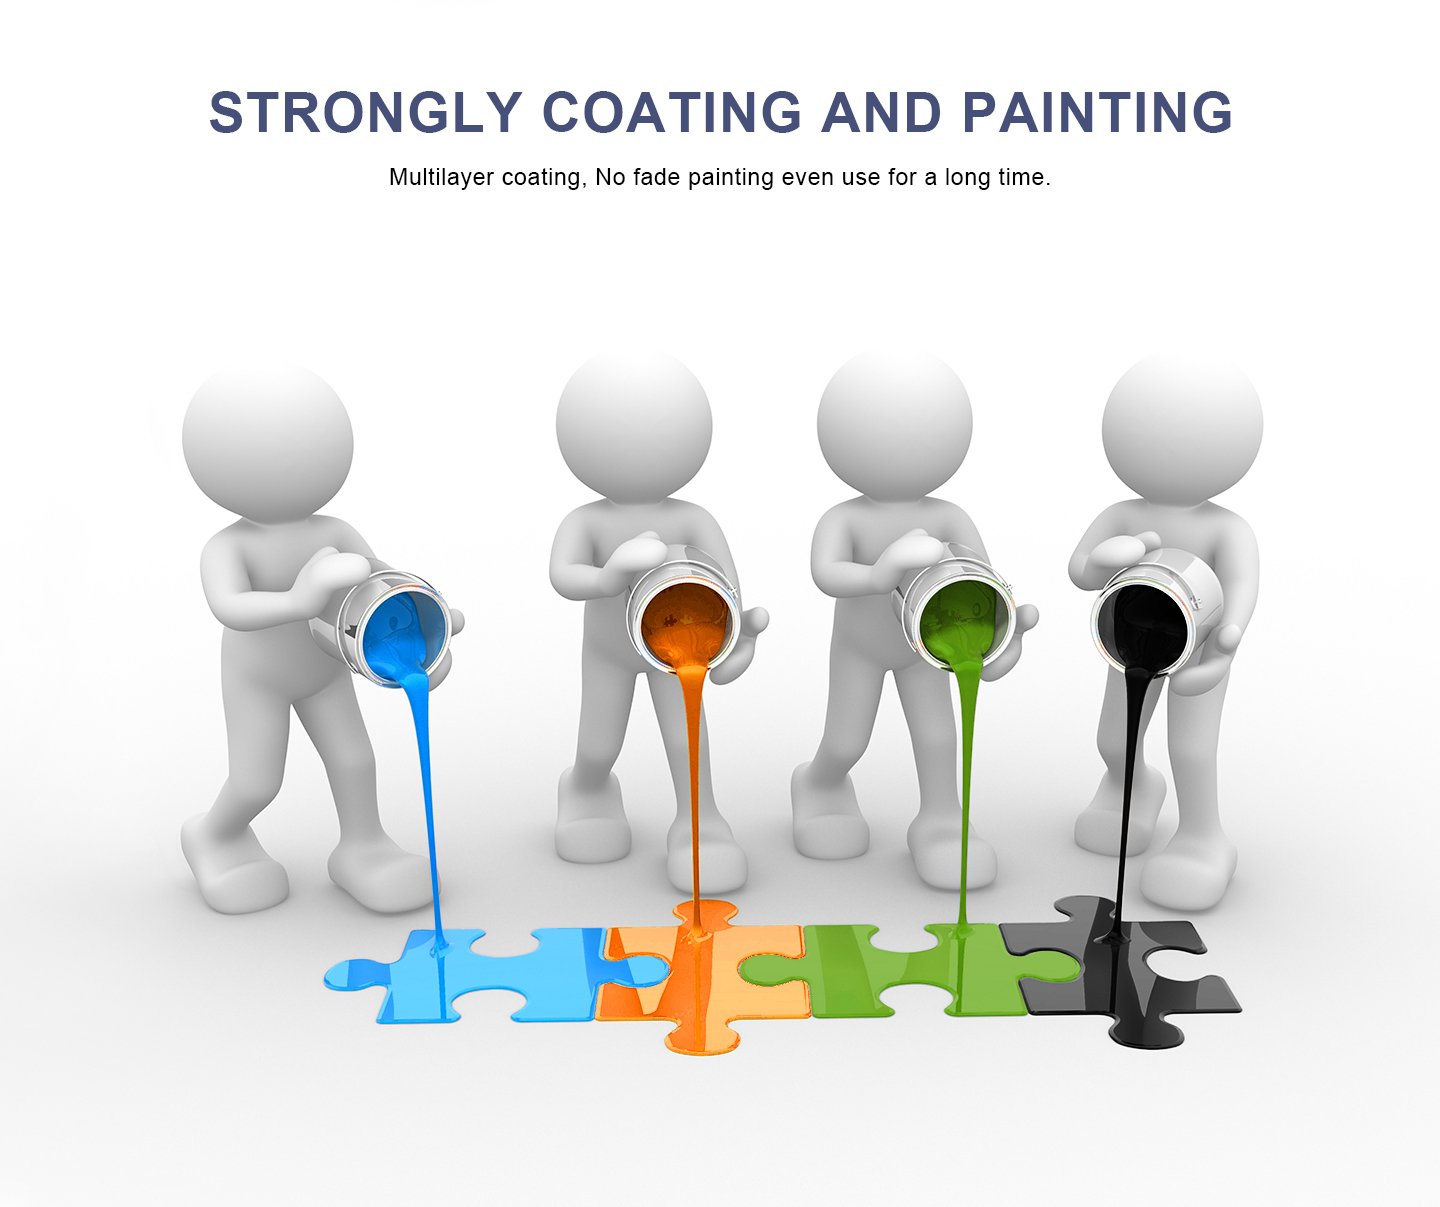 STRONGLY COATING AND PAINTING